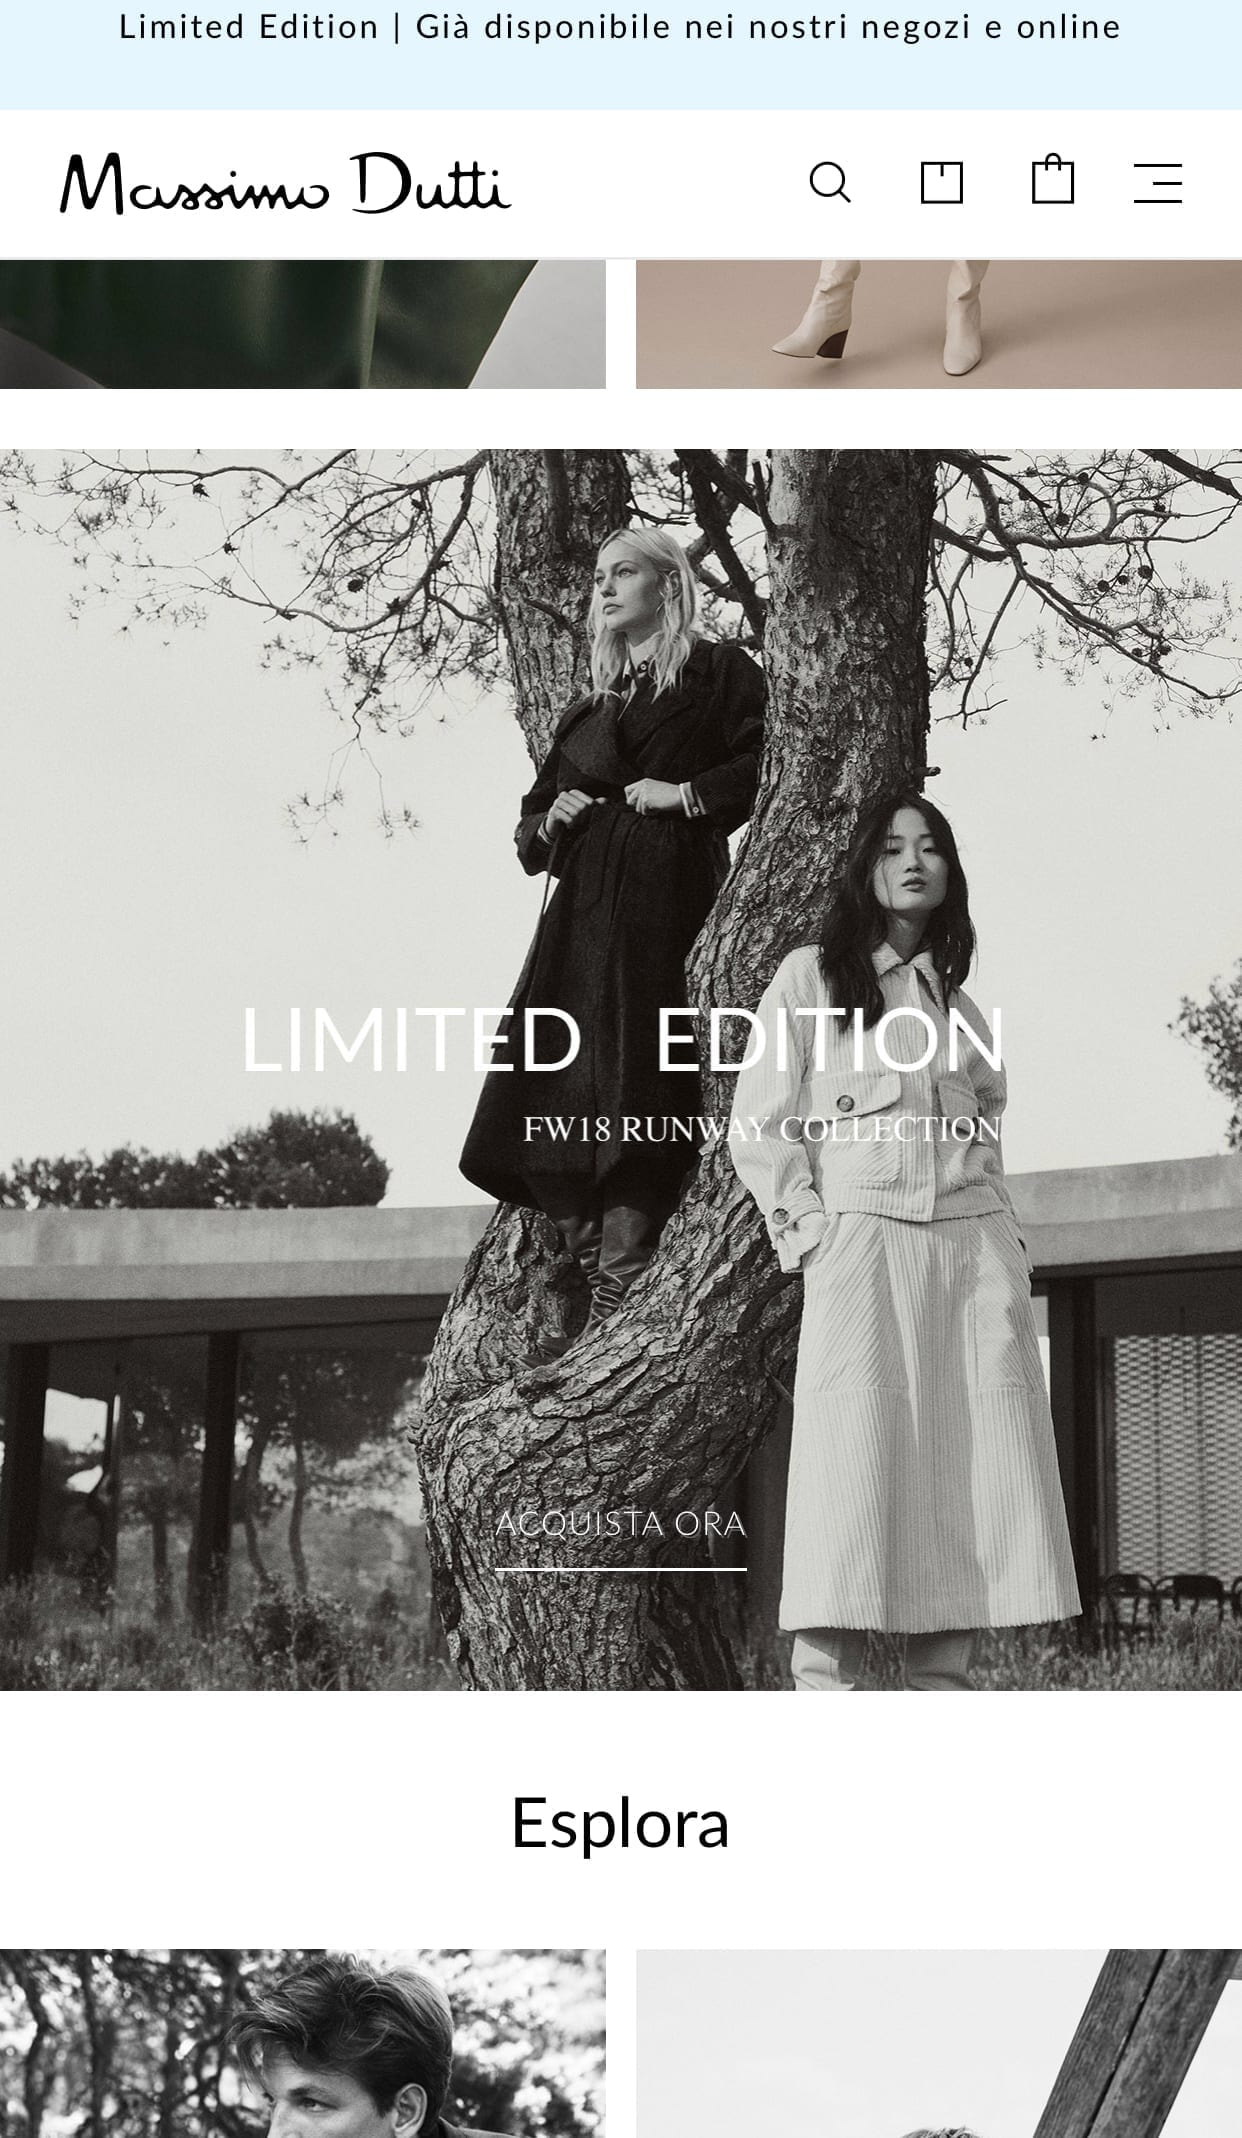 Limited edition cos'è, limited edition business model, limited edition significato